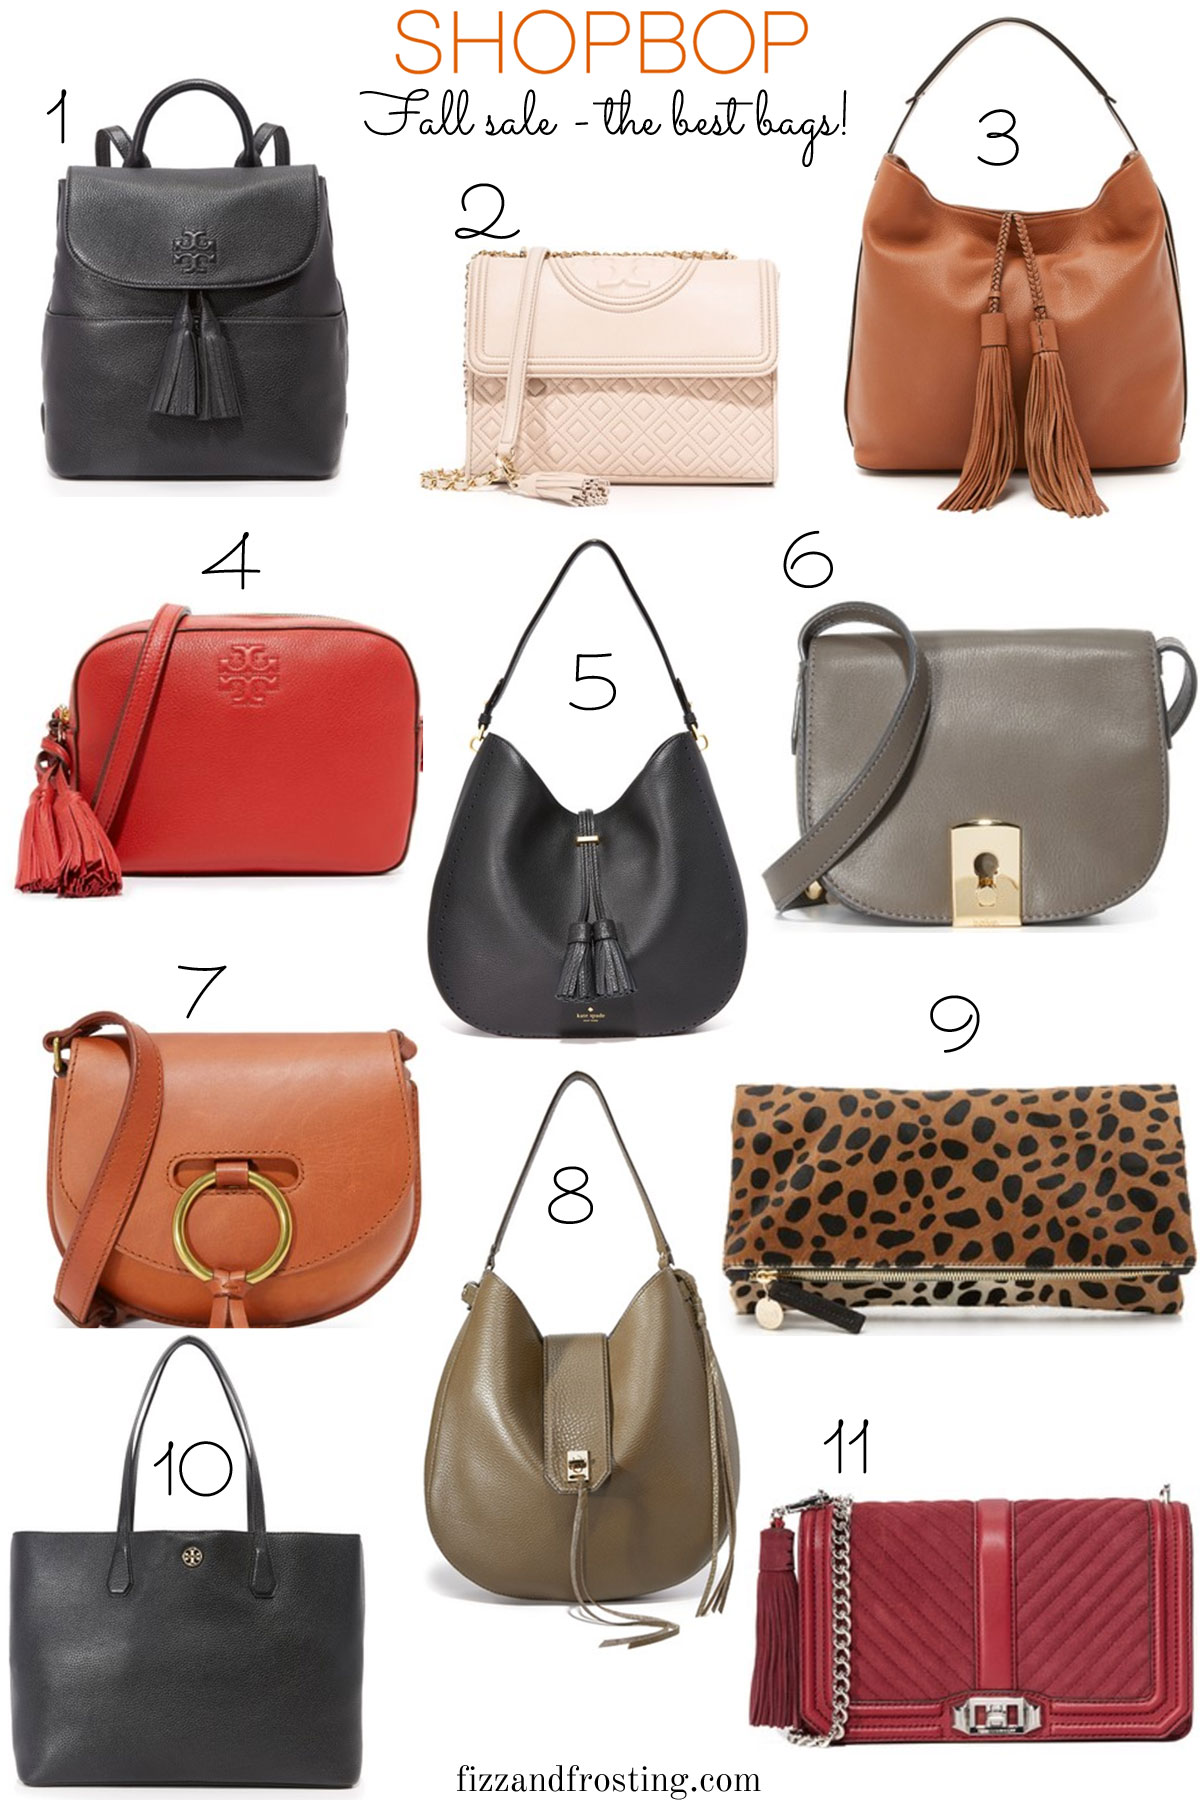 shopbop-fall-sale-2016-the-best-bags